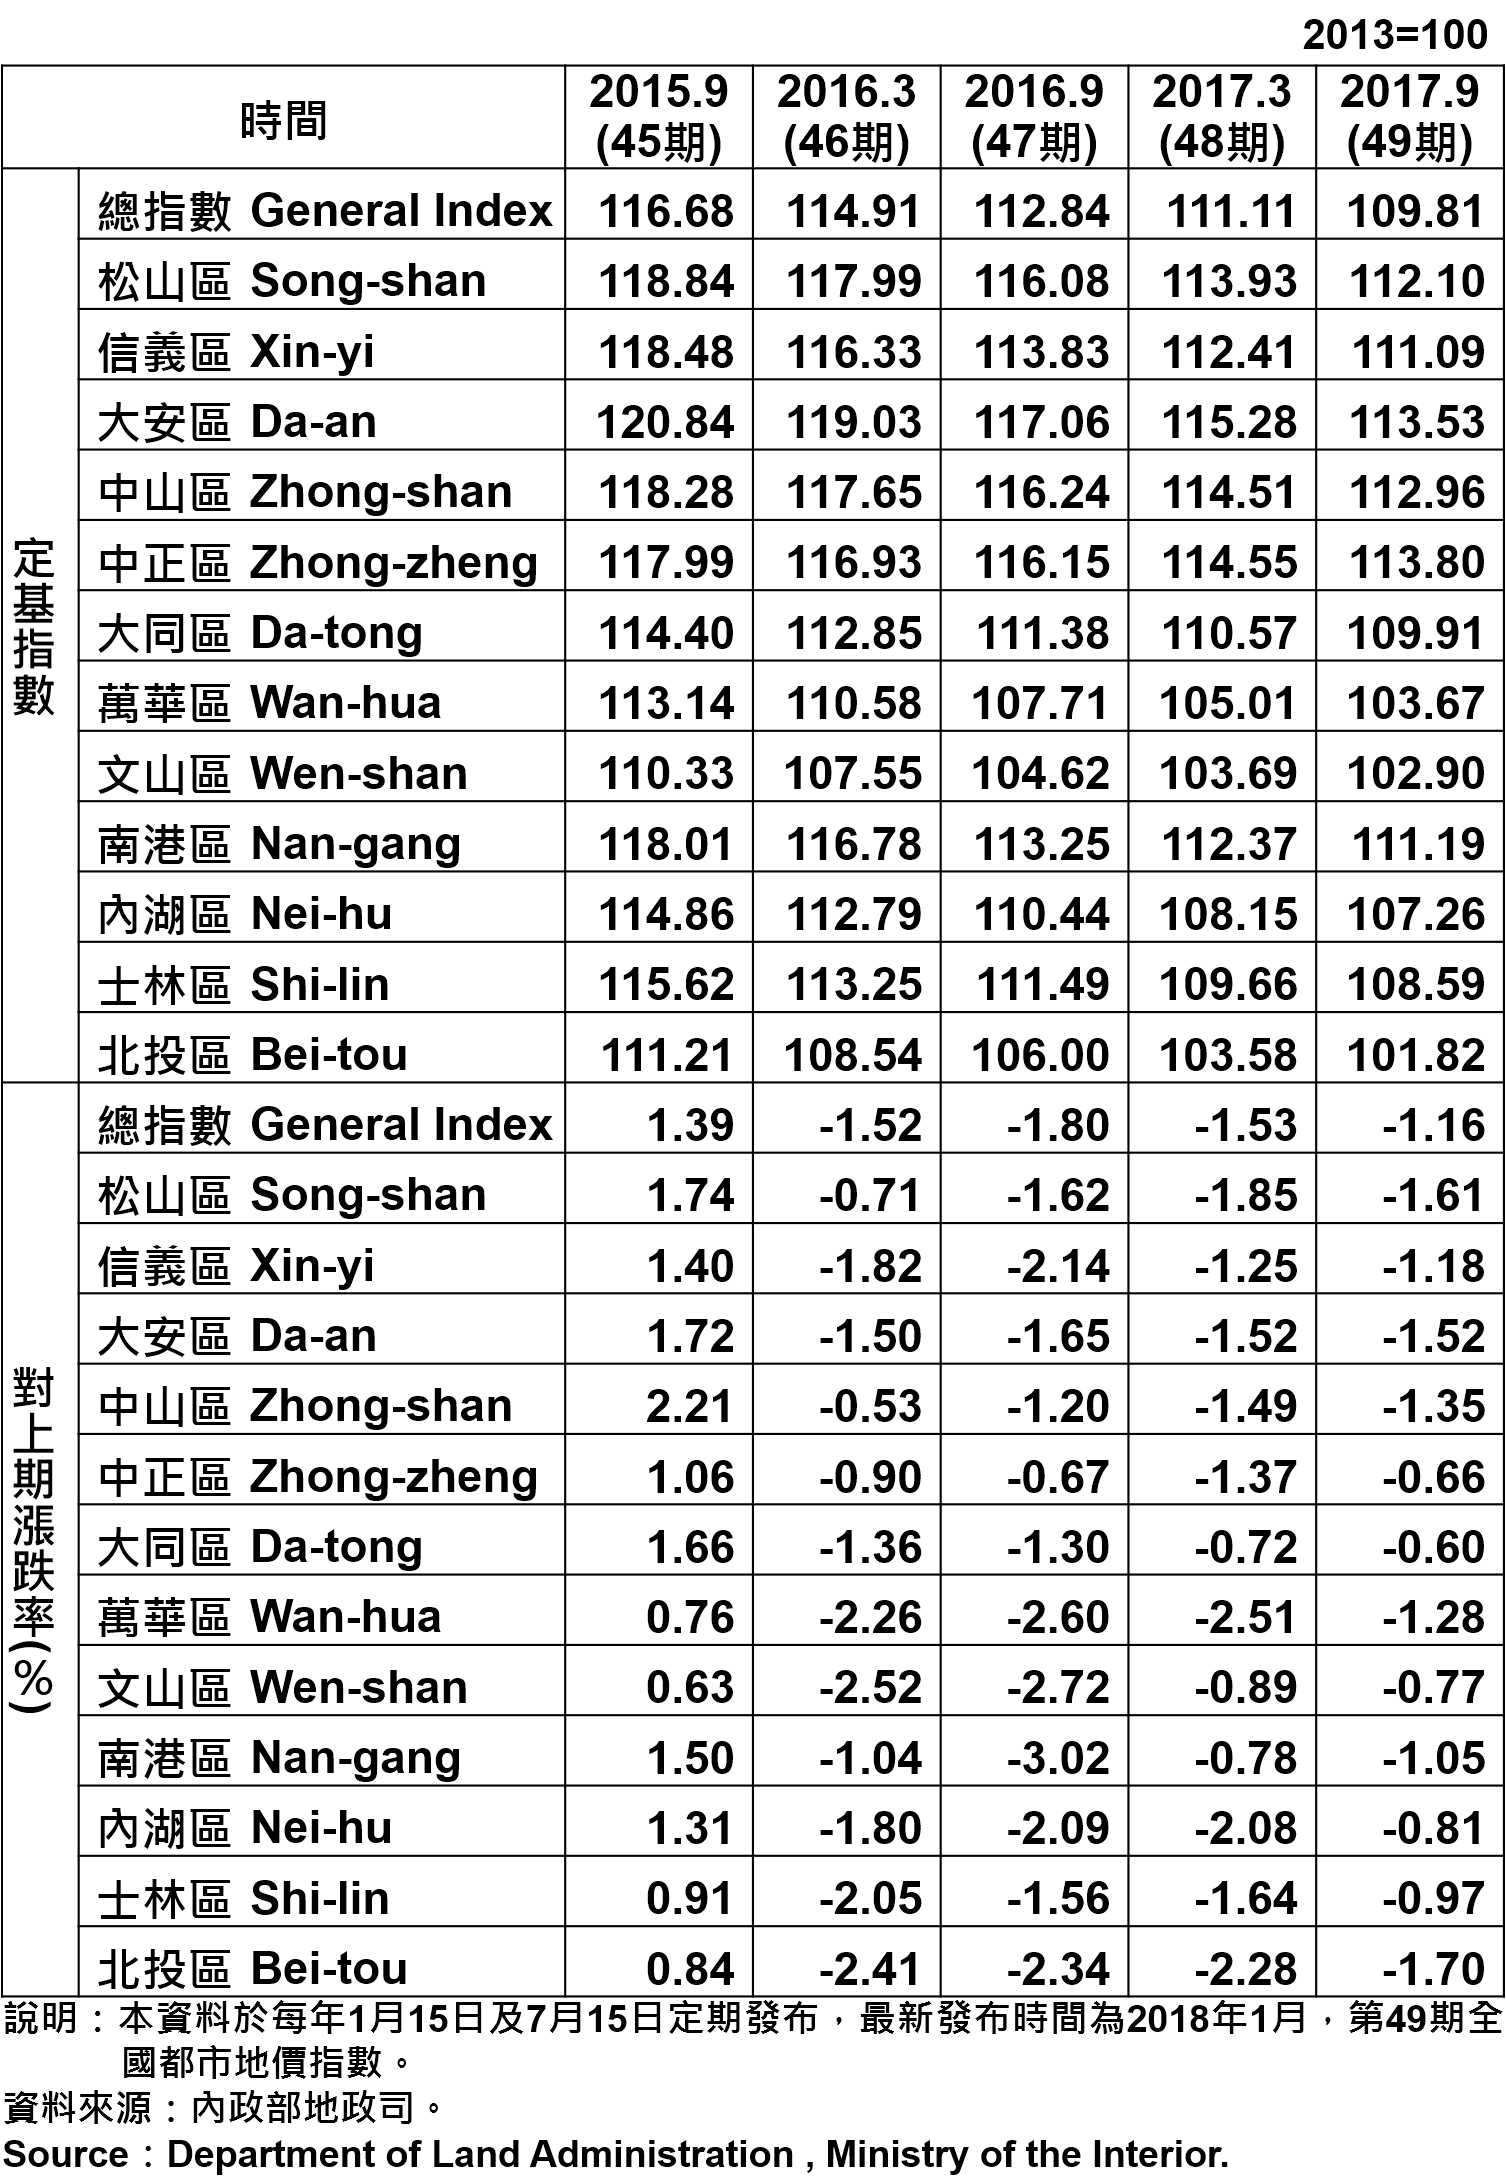 表1、臺北市都市地價指數分區表—2017  Taipei's Urban Land Price Indexes by Districts—2017